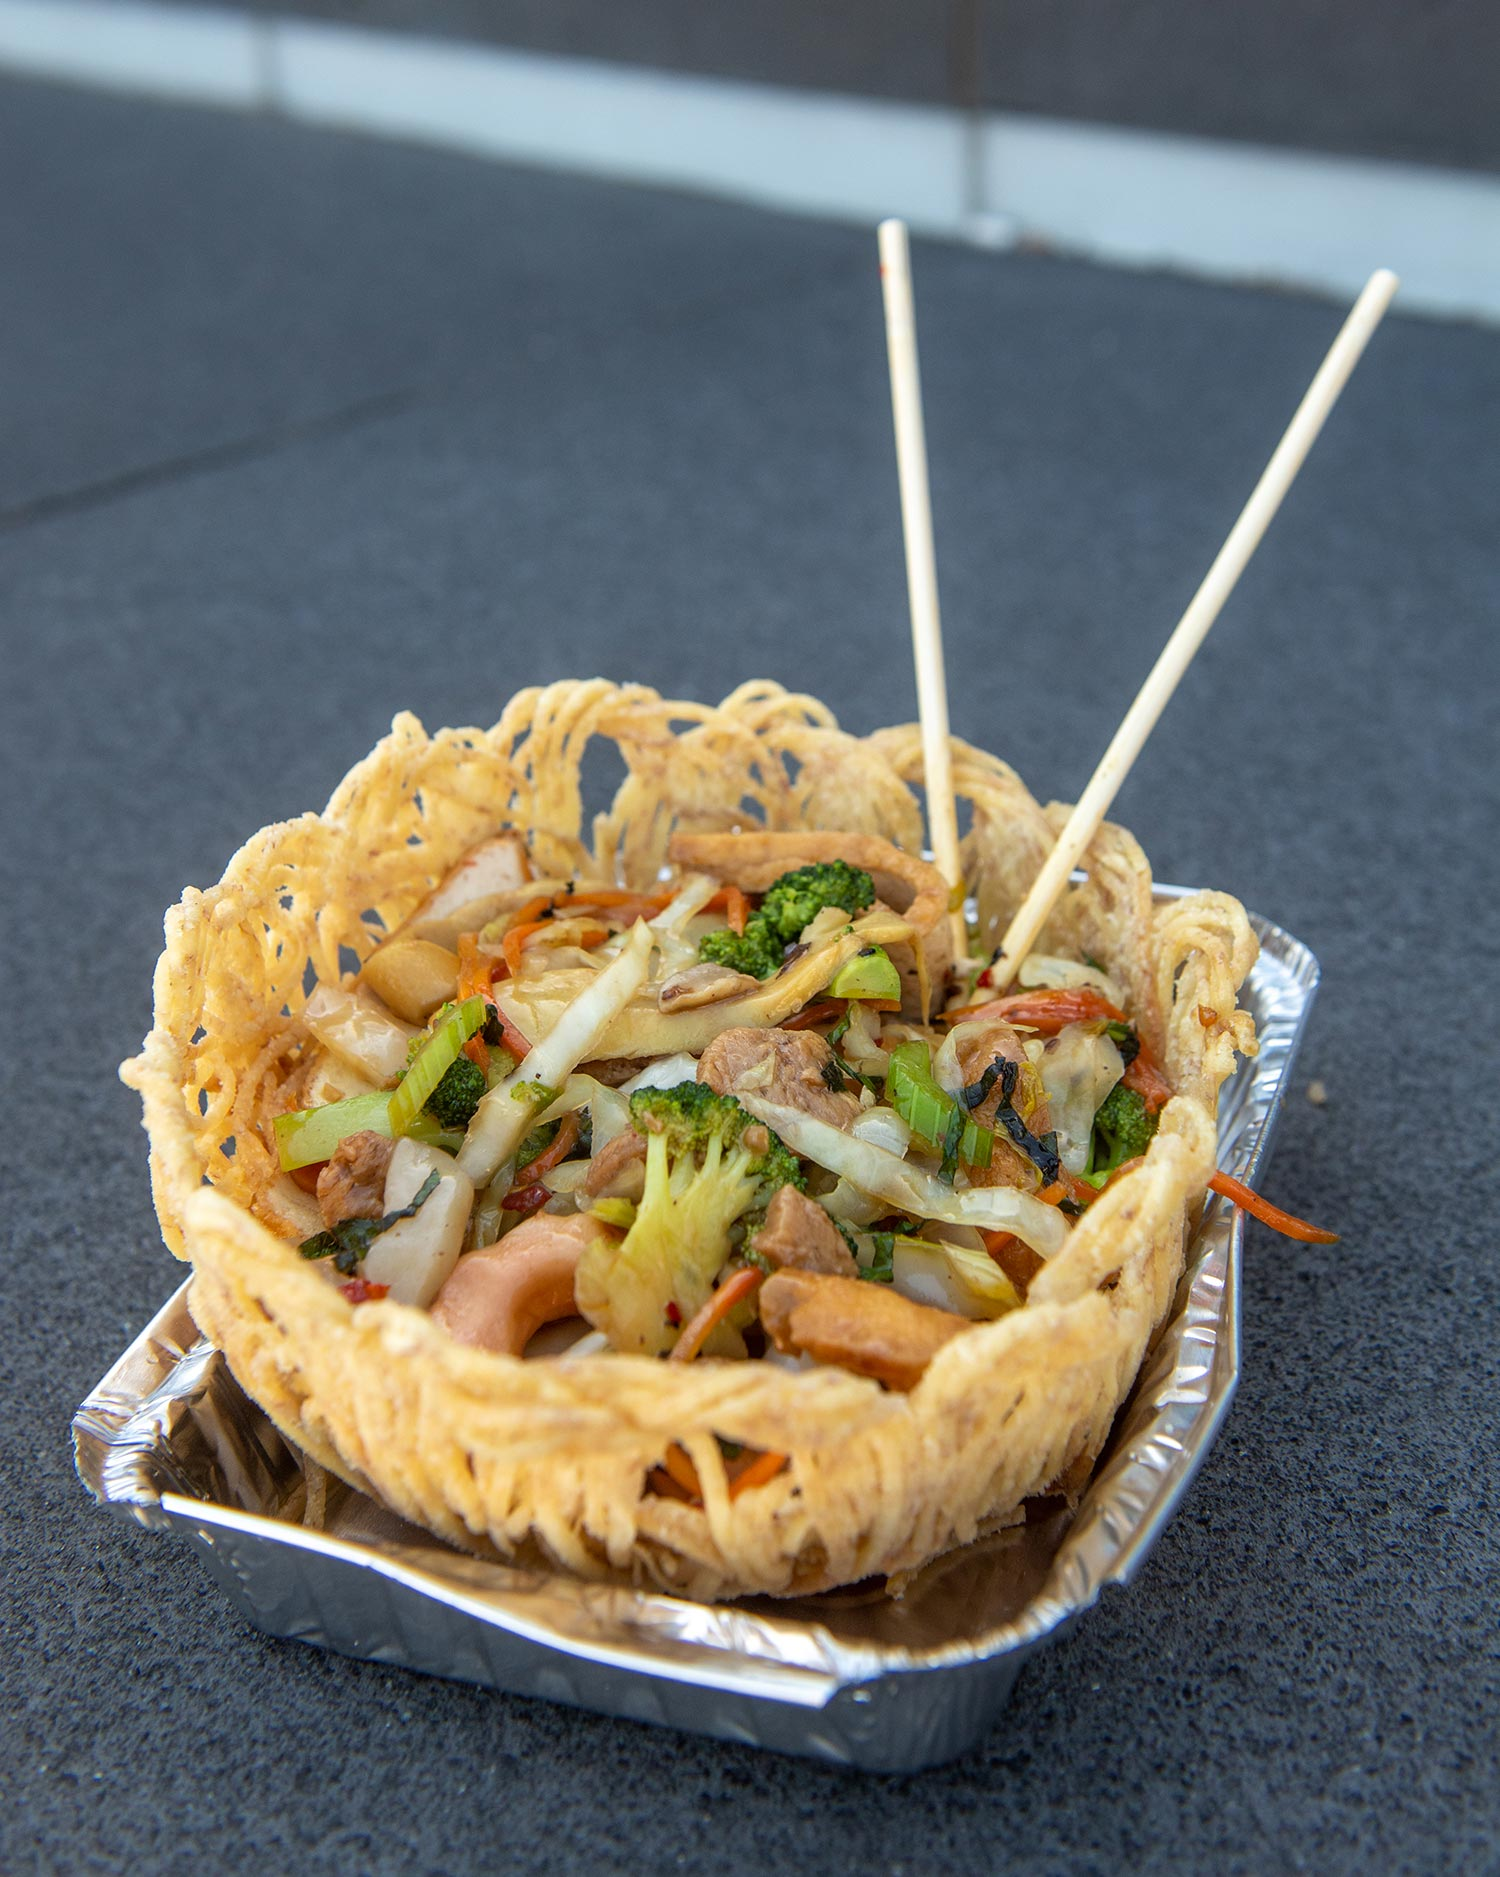 Photo of Grasshoppers' Crispy Taro Nest on N Beacon St, Allston, Marsh 23. Crispy taro strands form a bowl that holds a noodle salad with broccoli, onions and other vegetables.